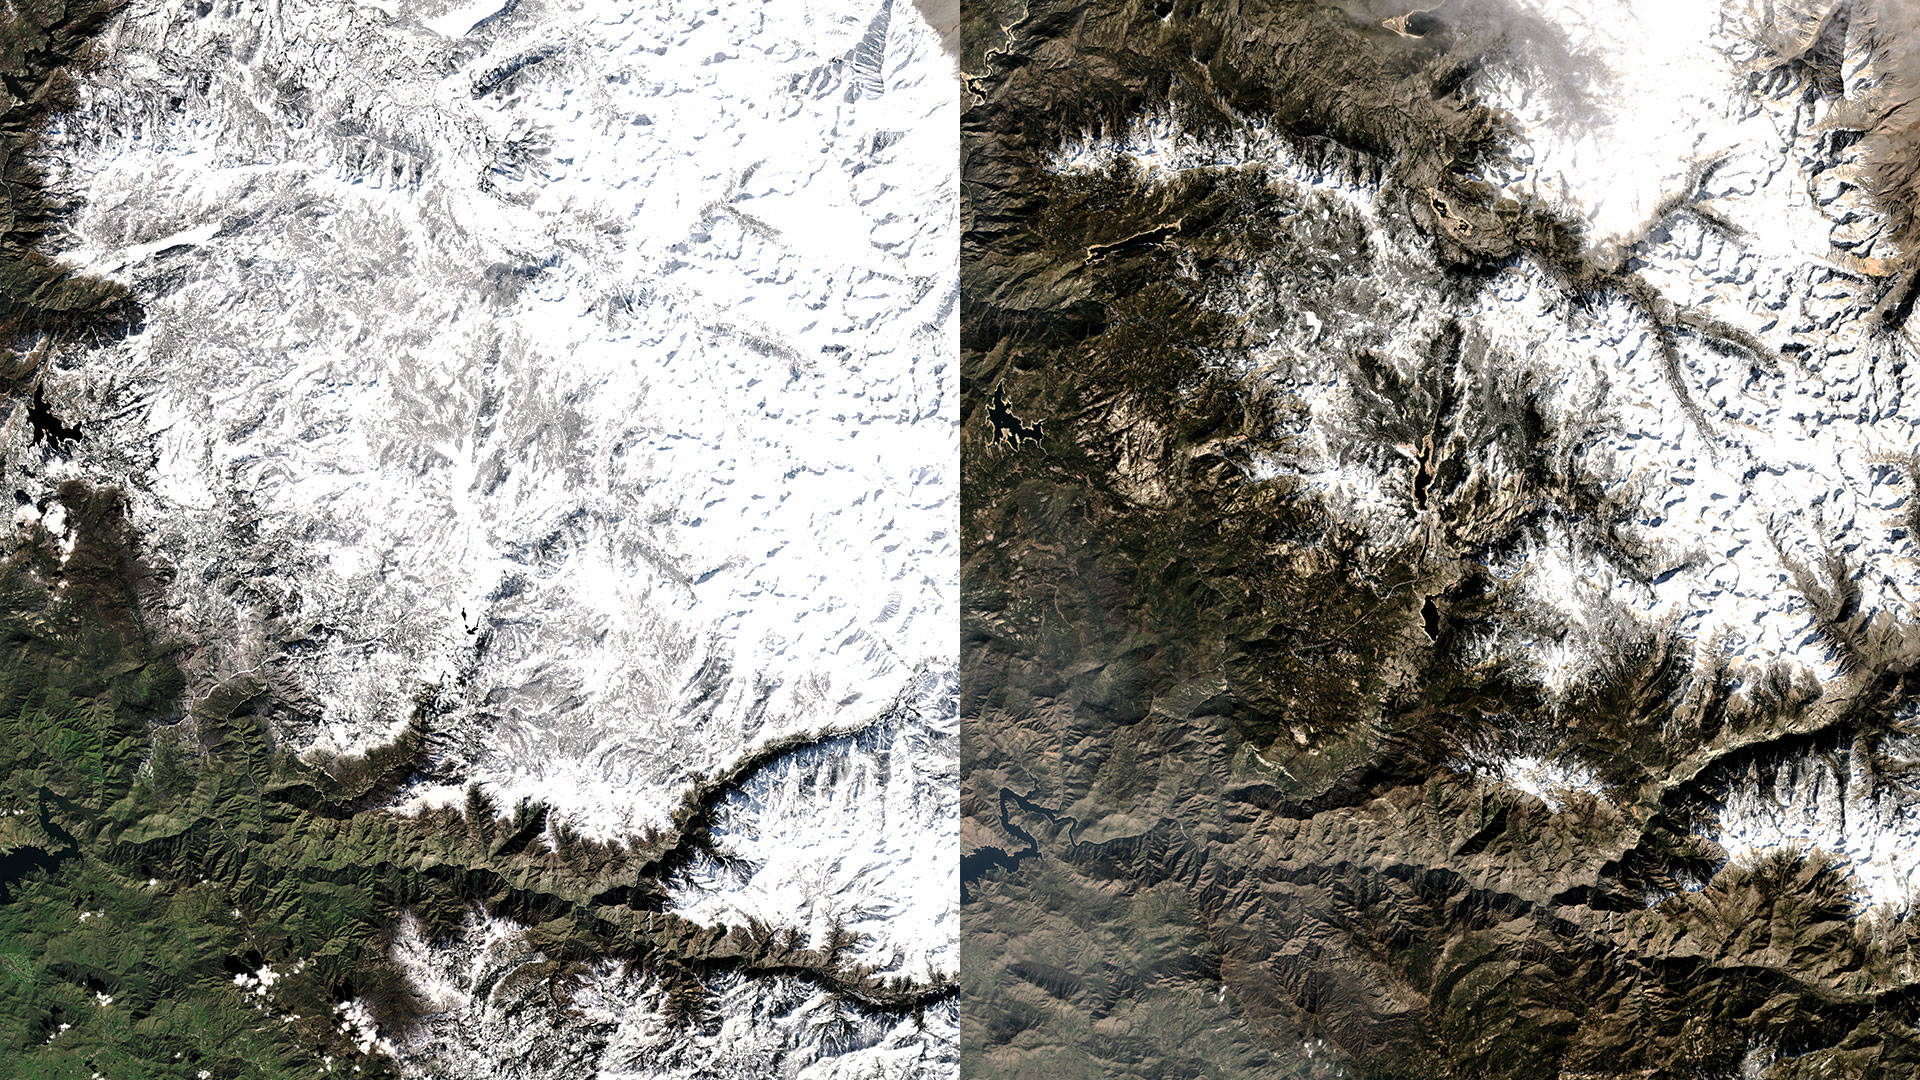 A satellite view of Mono Hot Springs February 12, 2017 (left) and February 11, 2018 (right).  Teodros Hailye/Image by Planet Labs